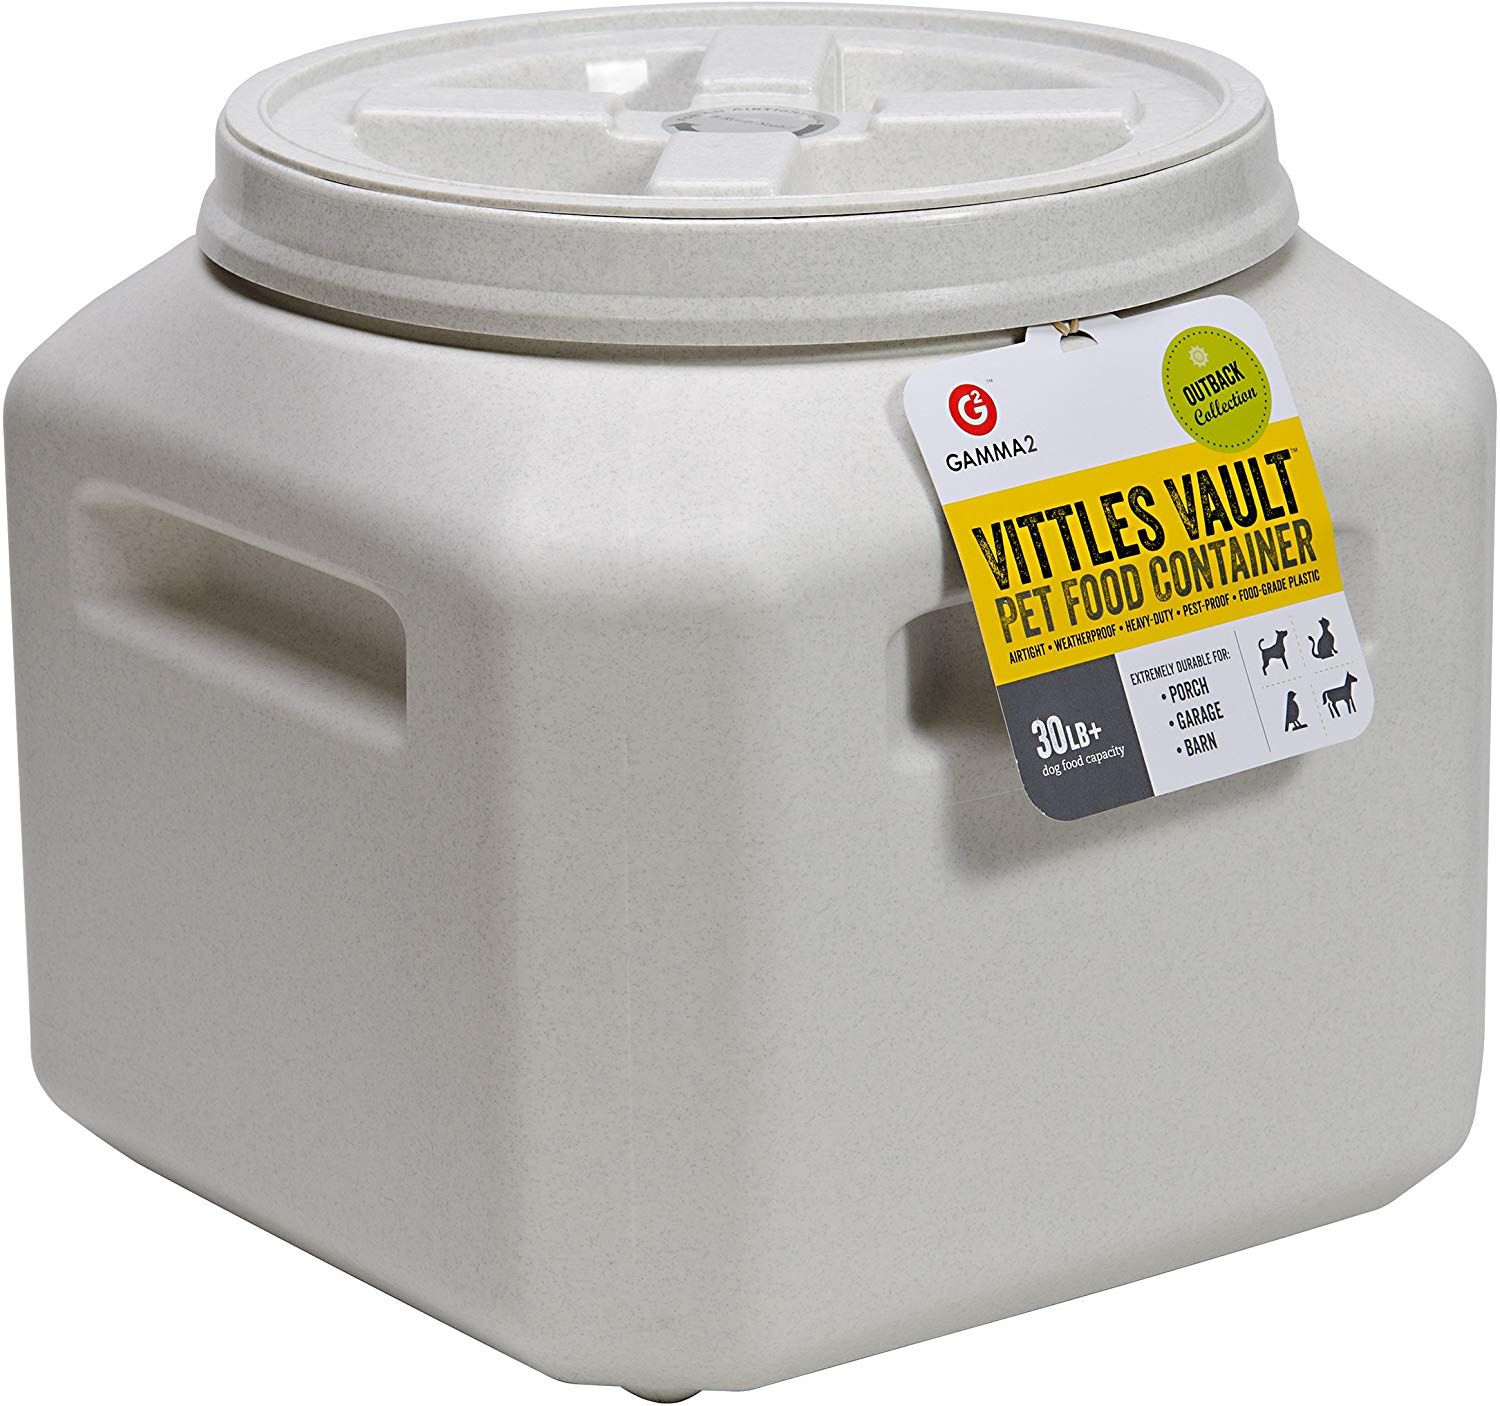 Vittles Vault 30 Pound Stackable Details Can Be Found By